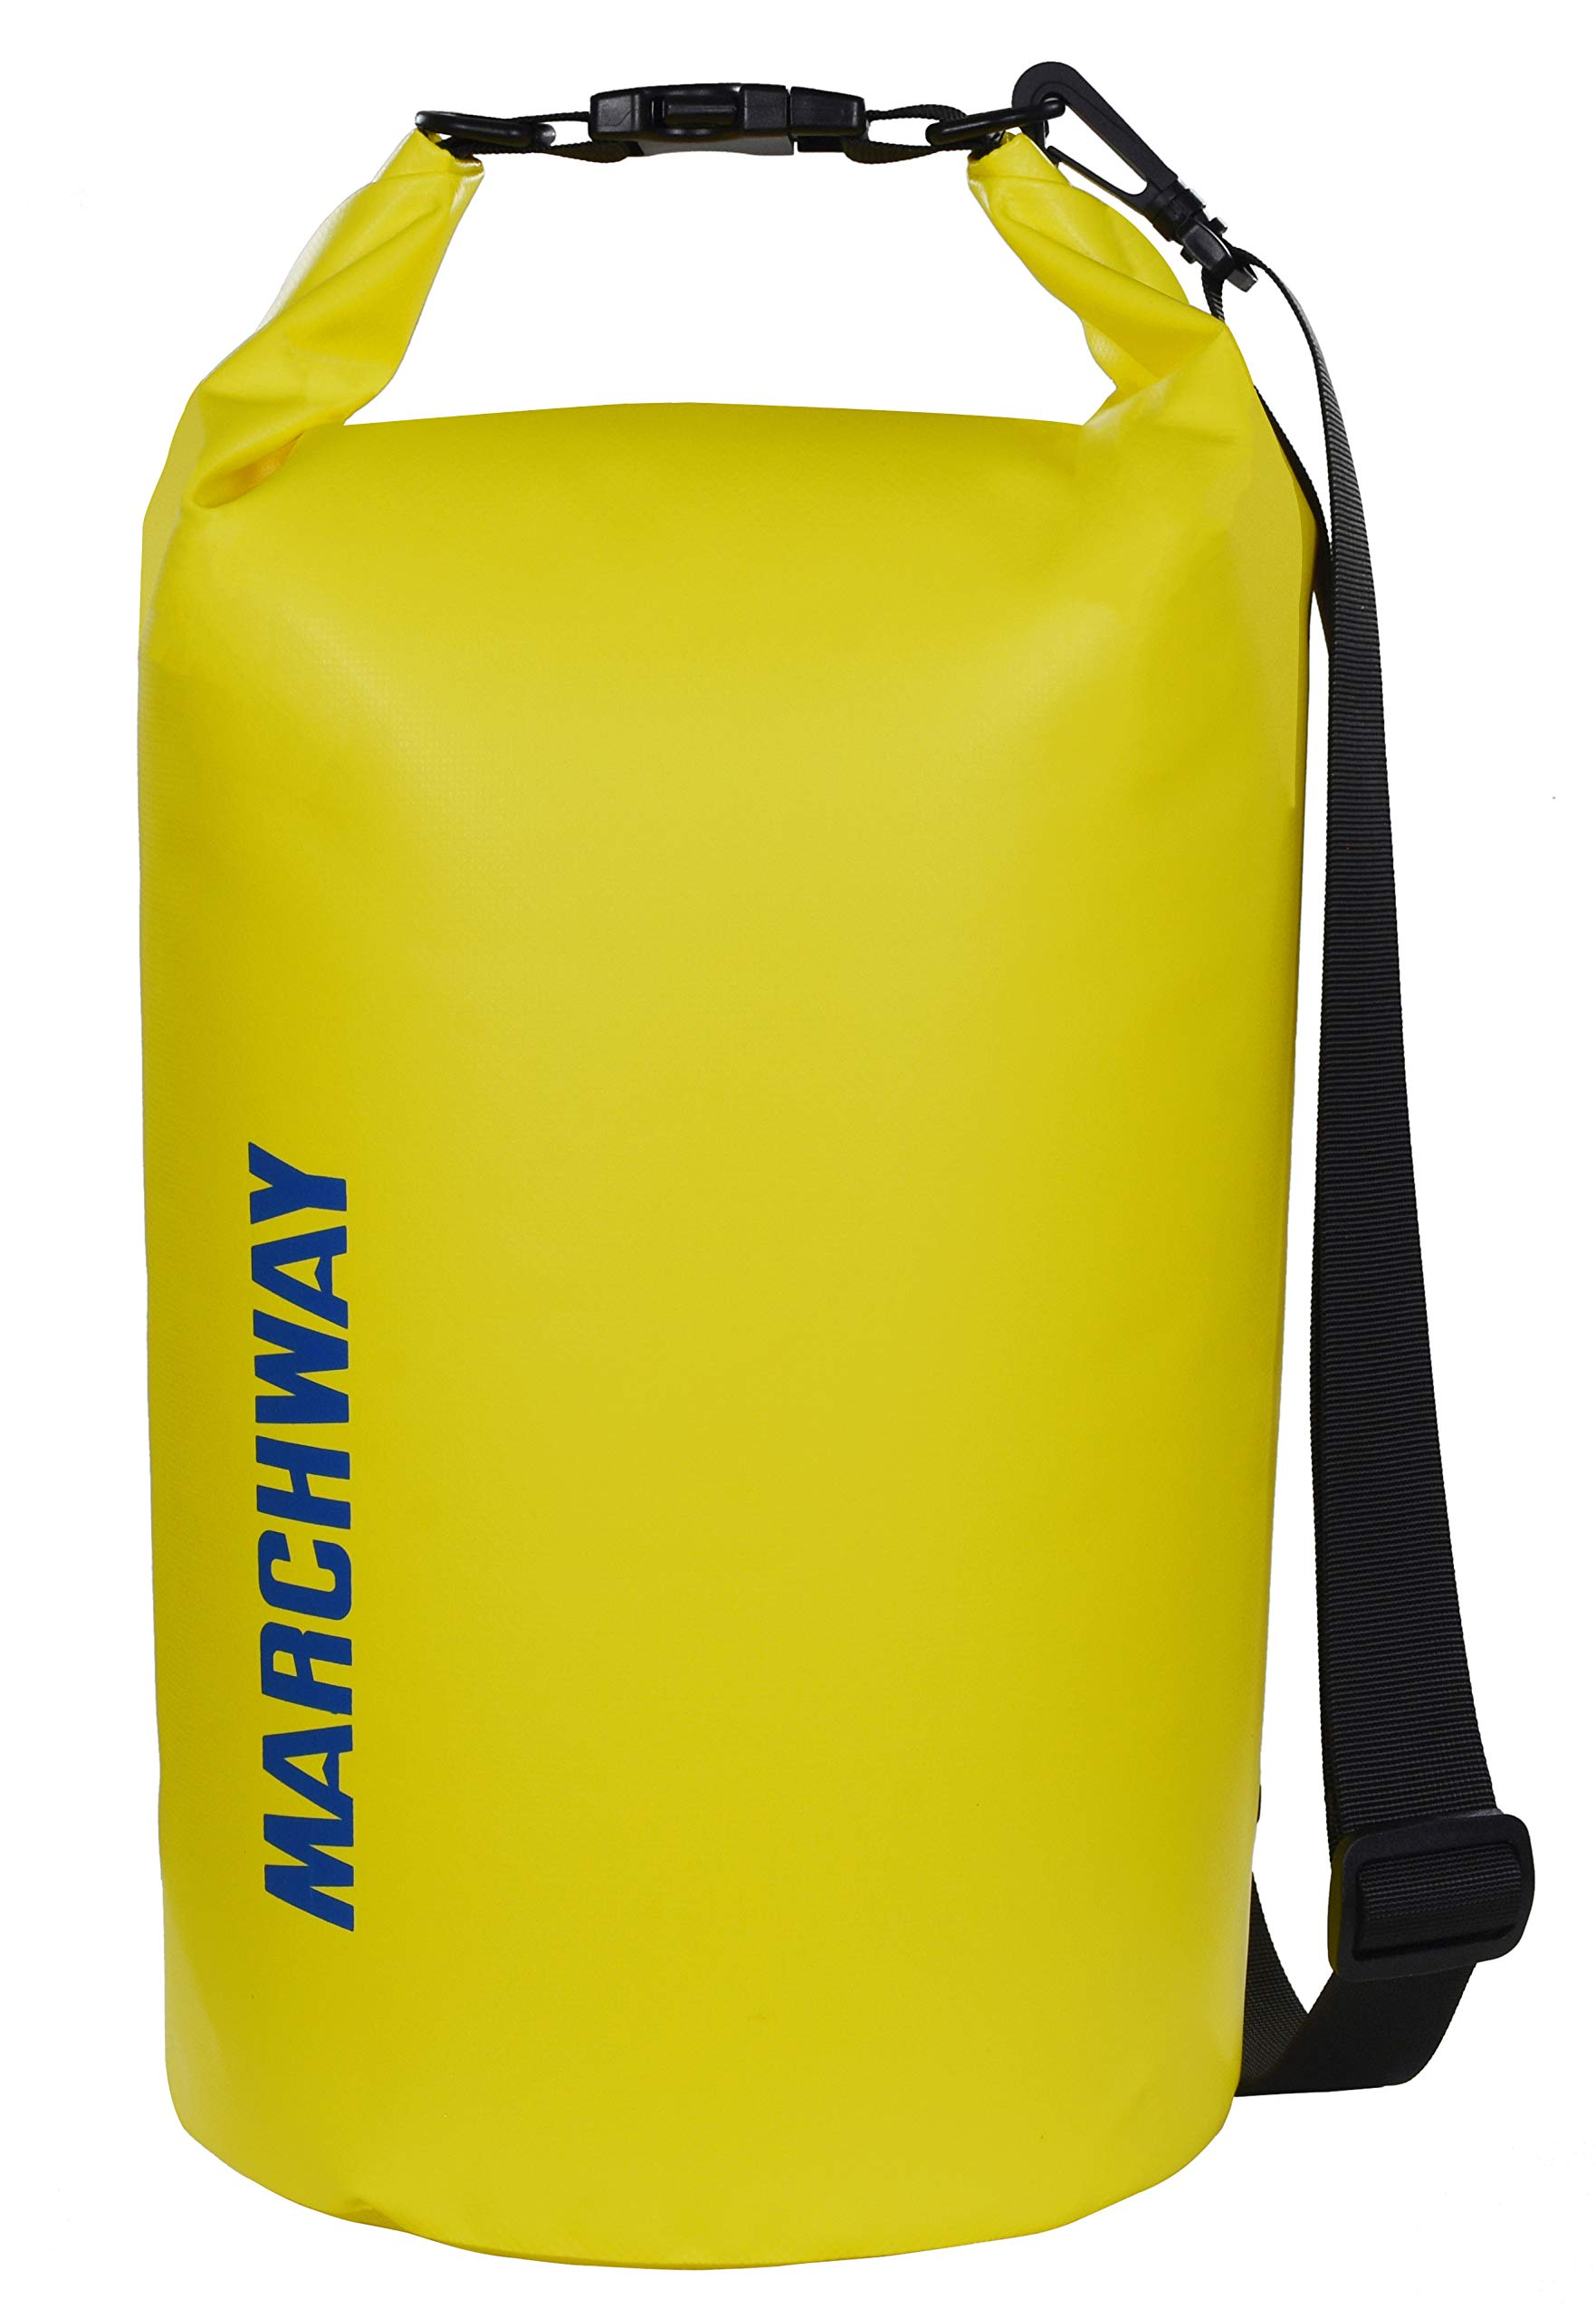 MARCHWAY Floating Waterproof Dry Bag 5L/10L/20L/30L/40L, Roll Top Sack Keeps Gear Dry for Kayaking, Rafting, Boating, Swimming, Camping, Hiking, Beach, Fishing (Lemon Yellow, 10L) by MARCHWAY